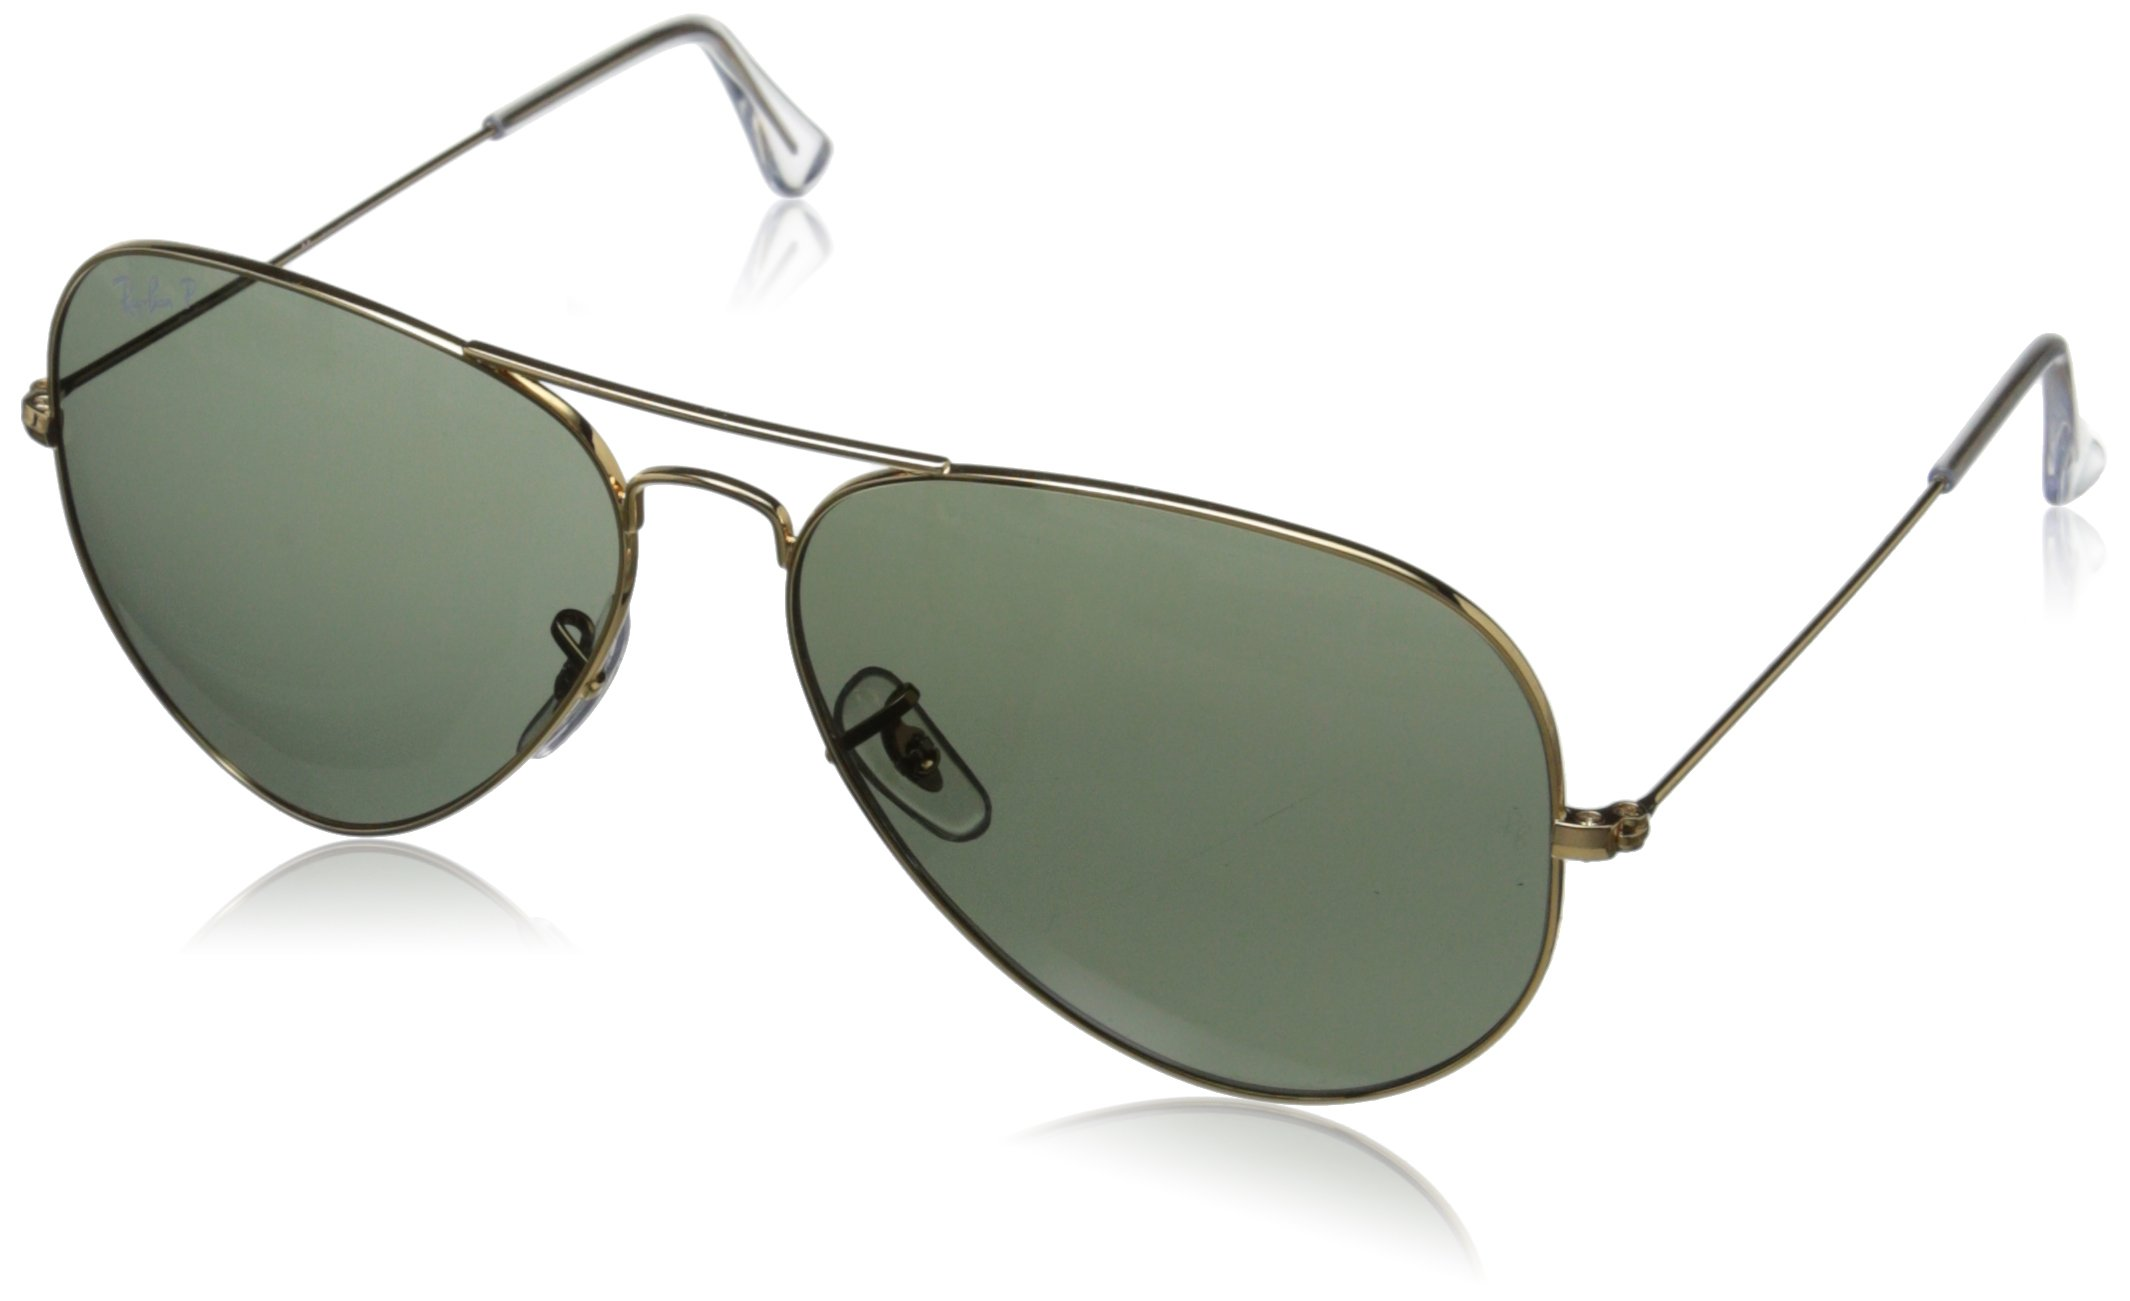 fd7811fca1 Mens Ray Ban Aviator Polarized Sunglasses « Heritage Malta